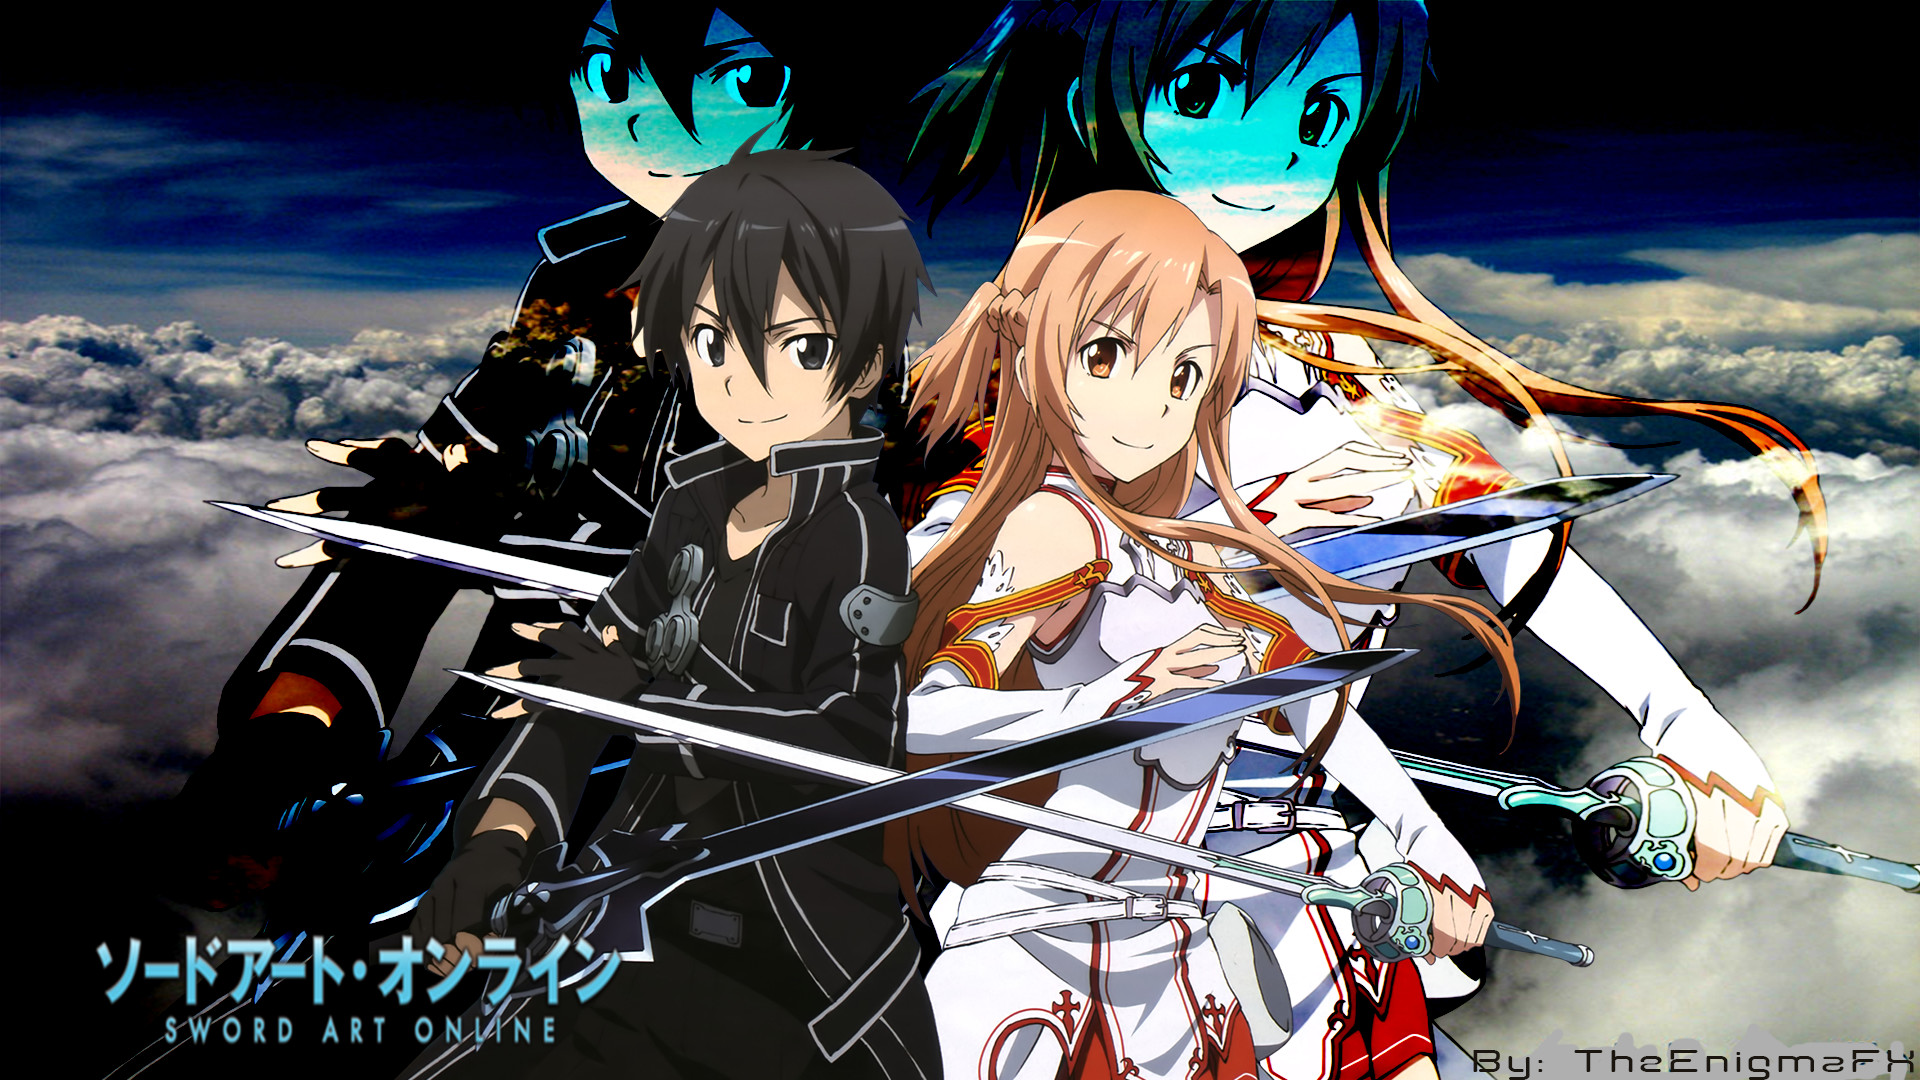 Bandai Namco has officially confirmed that Sword Art Online RE: Hollow .